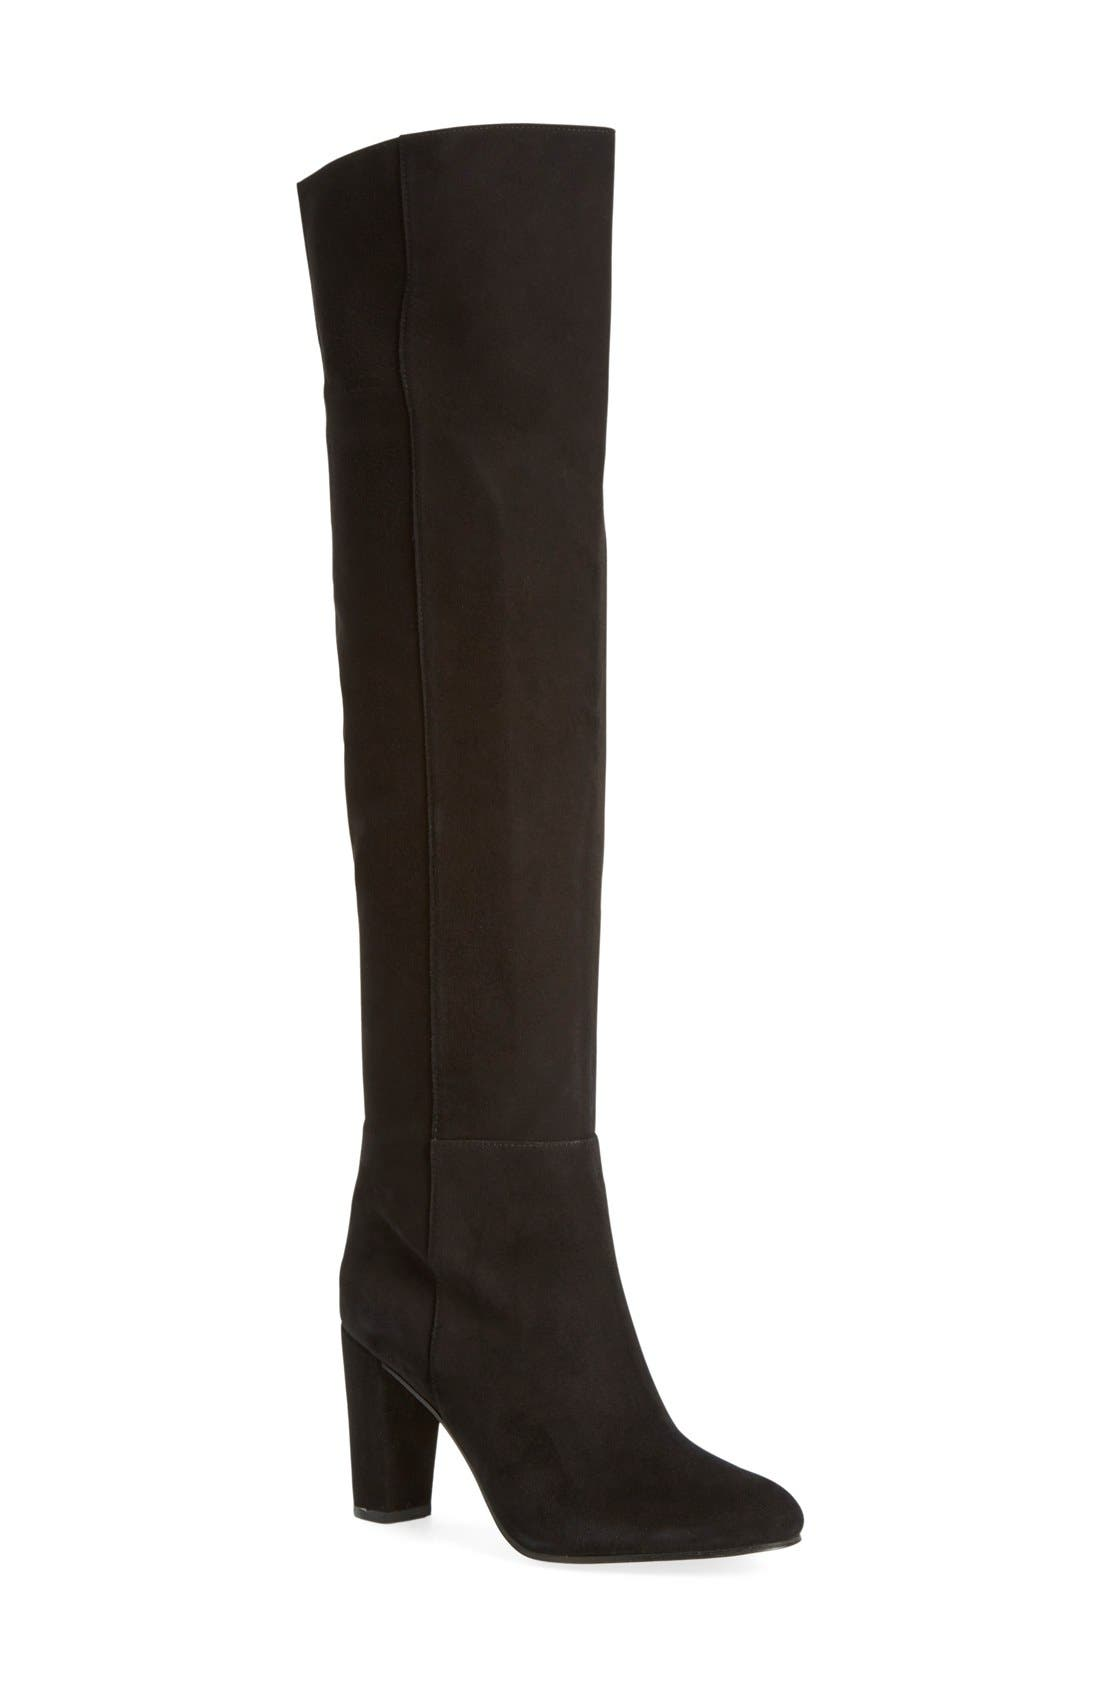 'Noble' Over the Knee Boot,                             Main thumbnail 1, color,                             001